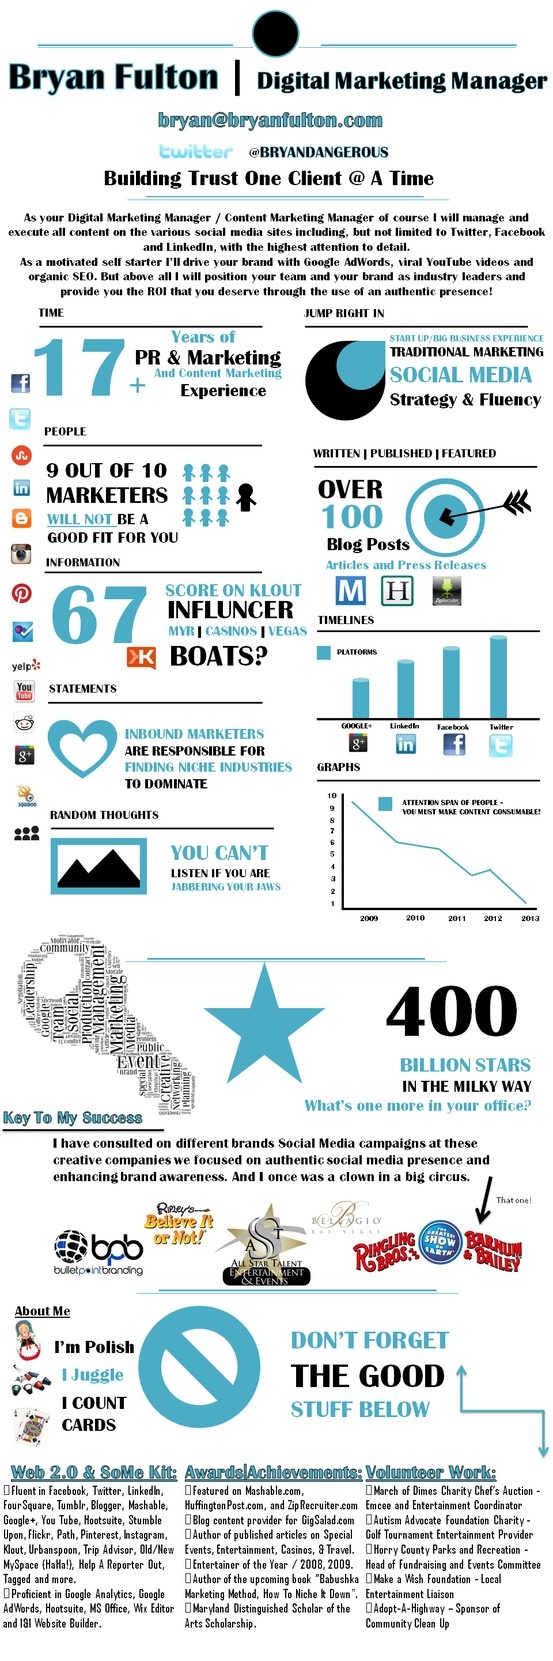 this is my infographic resume showing my offerings as a digital marketing manager if you